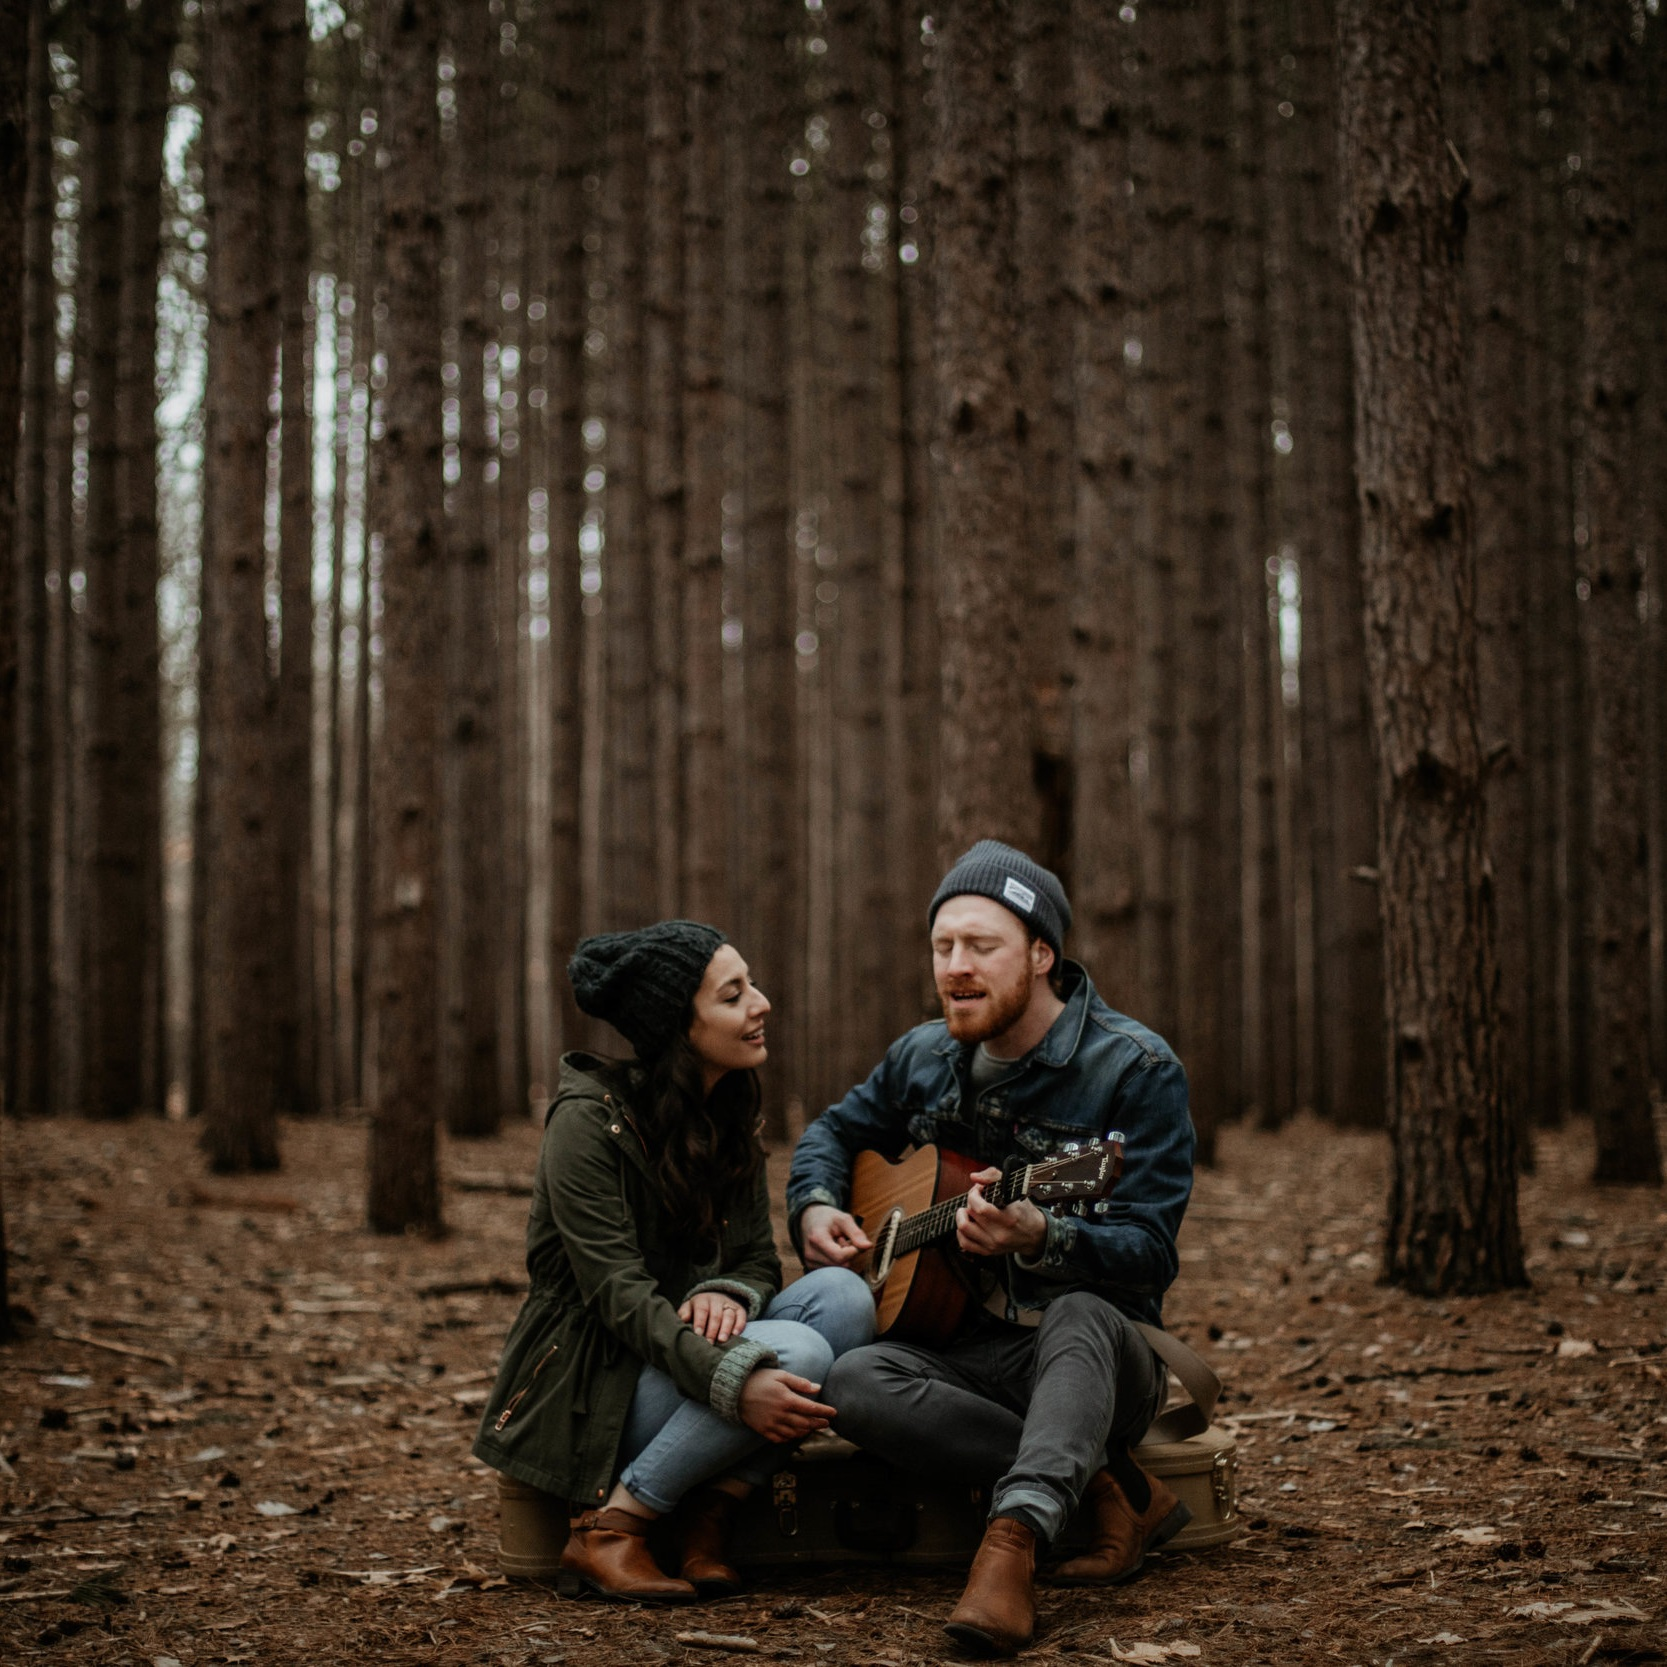 Bobby & Raquel - Intimate pine forest engagement session filled with music.